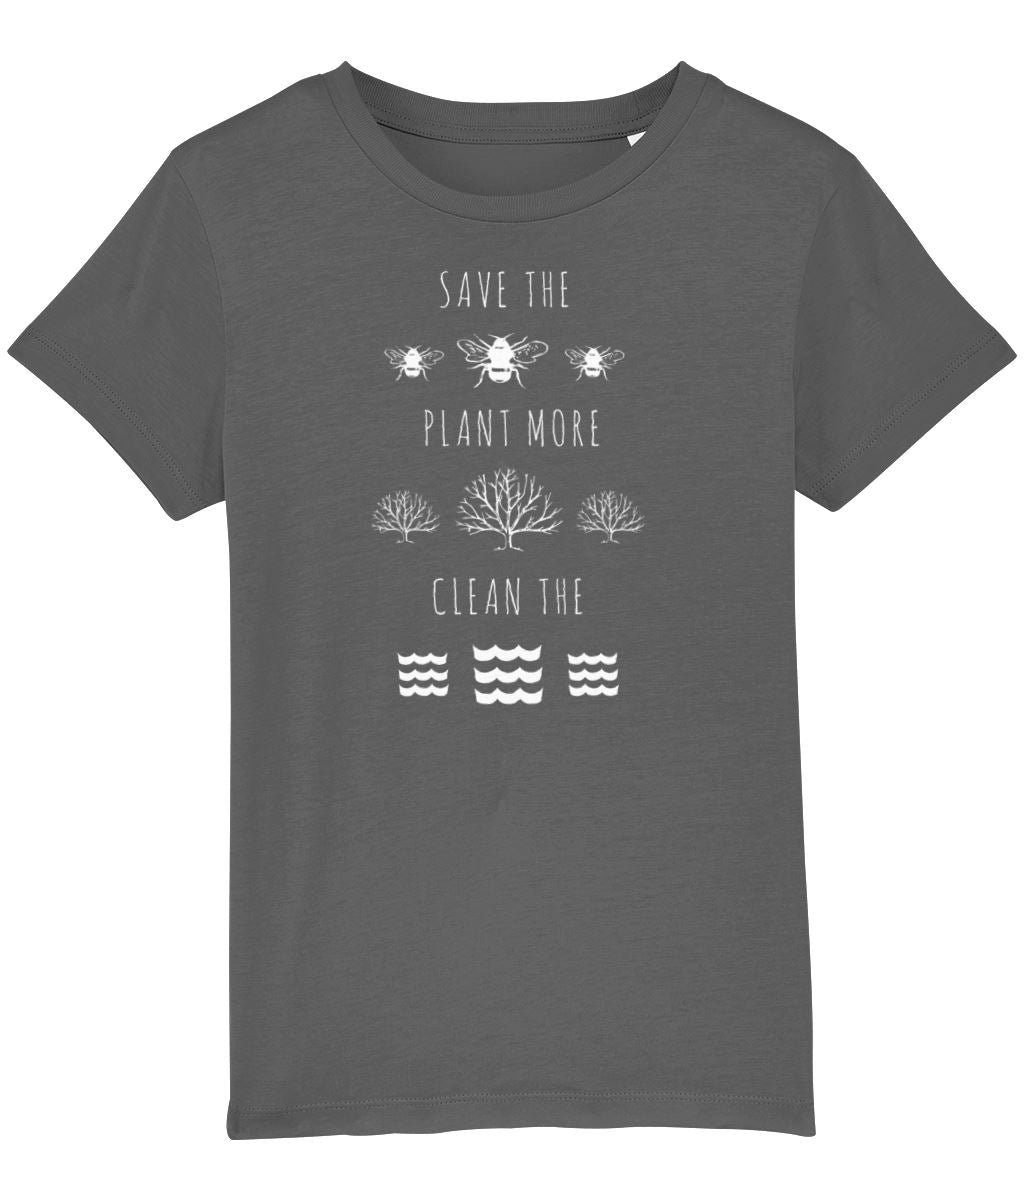 """Save the Bees, Plant More Trees, Clean the Seas"" Children's Vegan T-Shirt (Unisex) Clothing Vegan Original Anthracite 3-4 years"